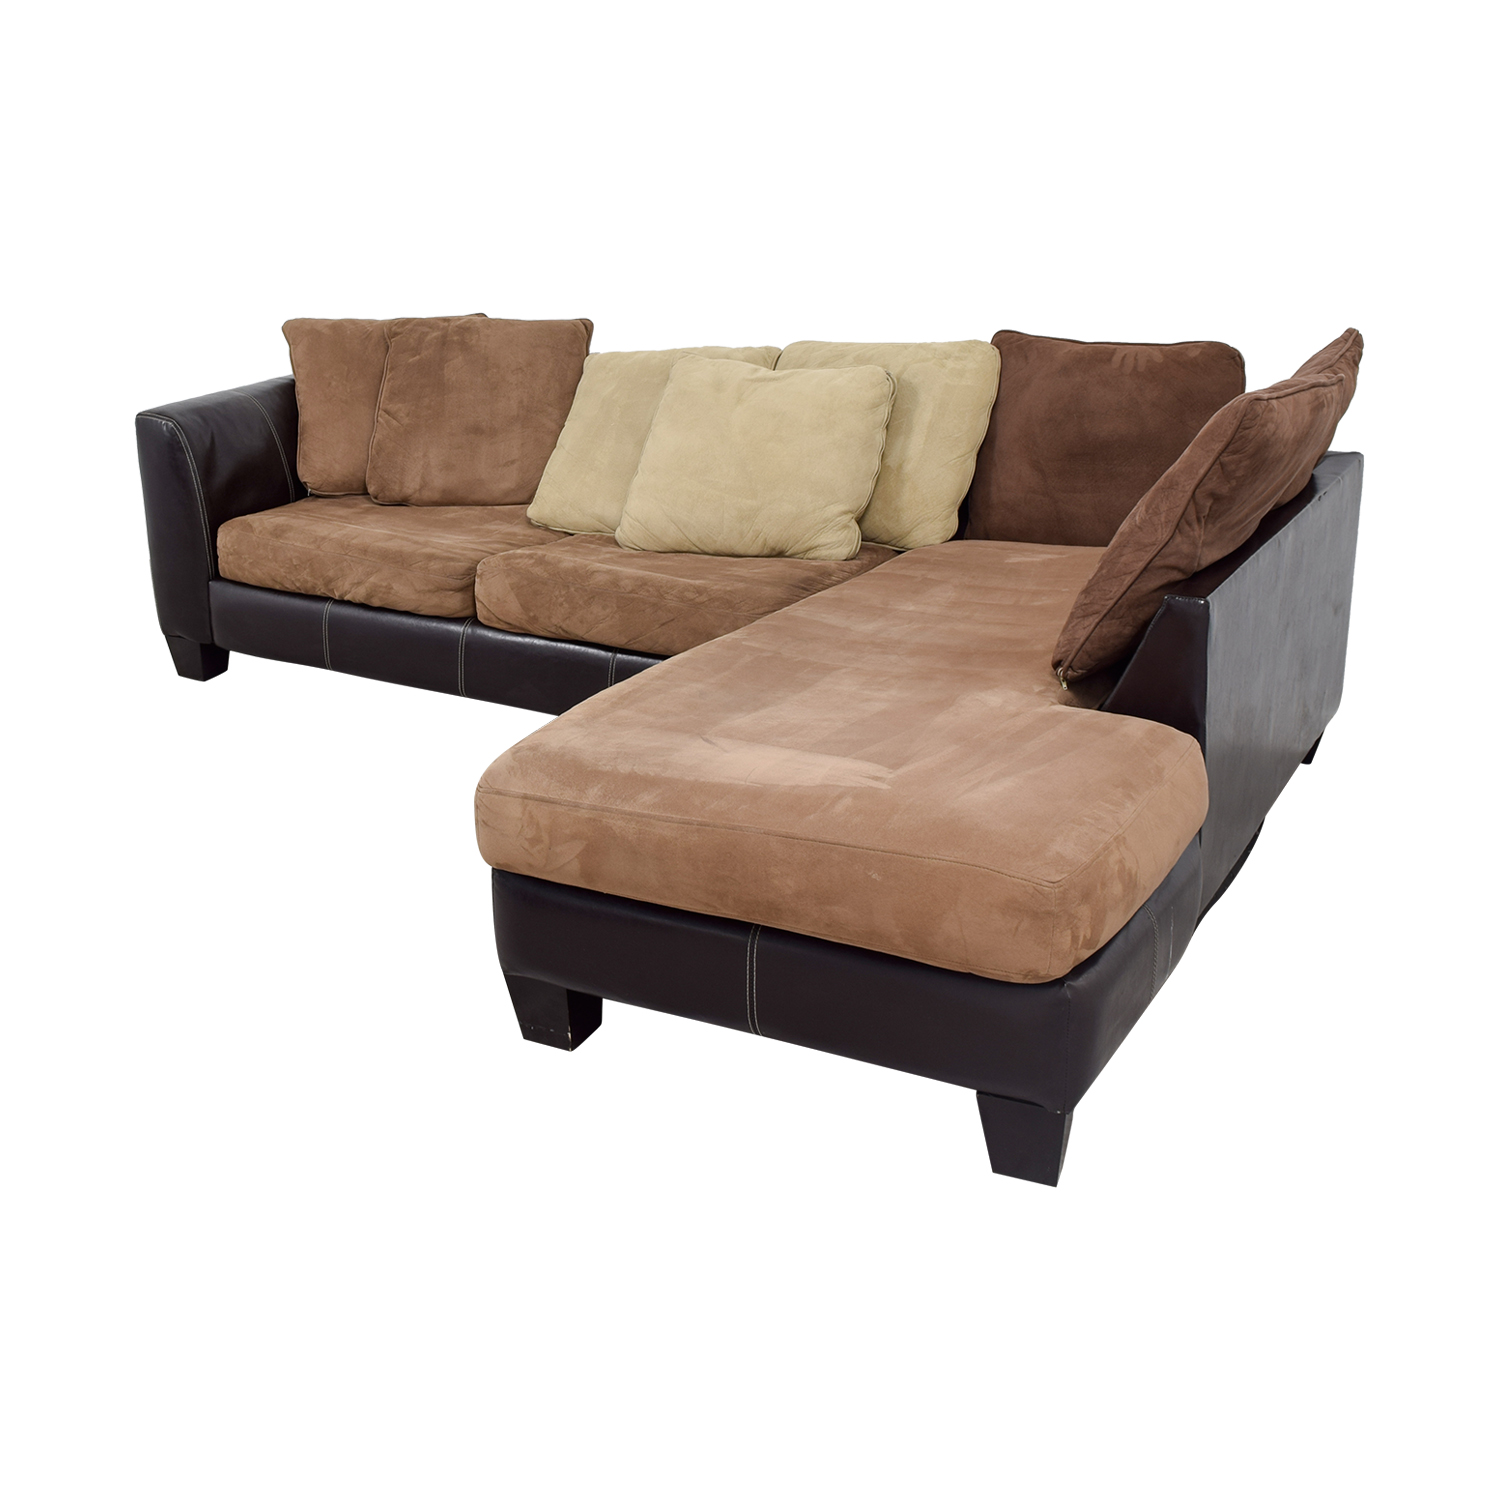 albany industries leather sofa madrid 89 off brown chaise